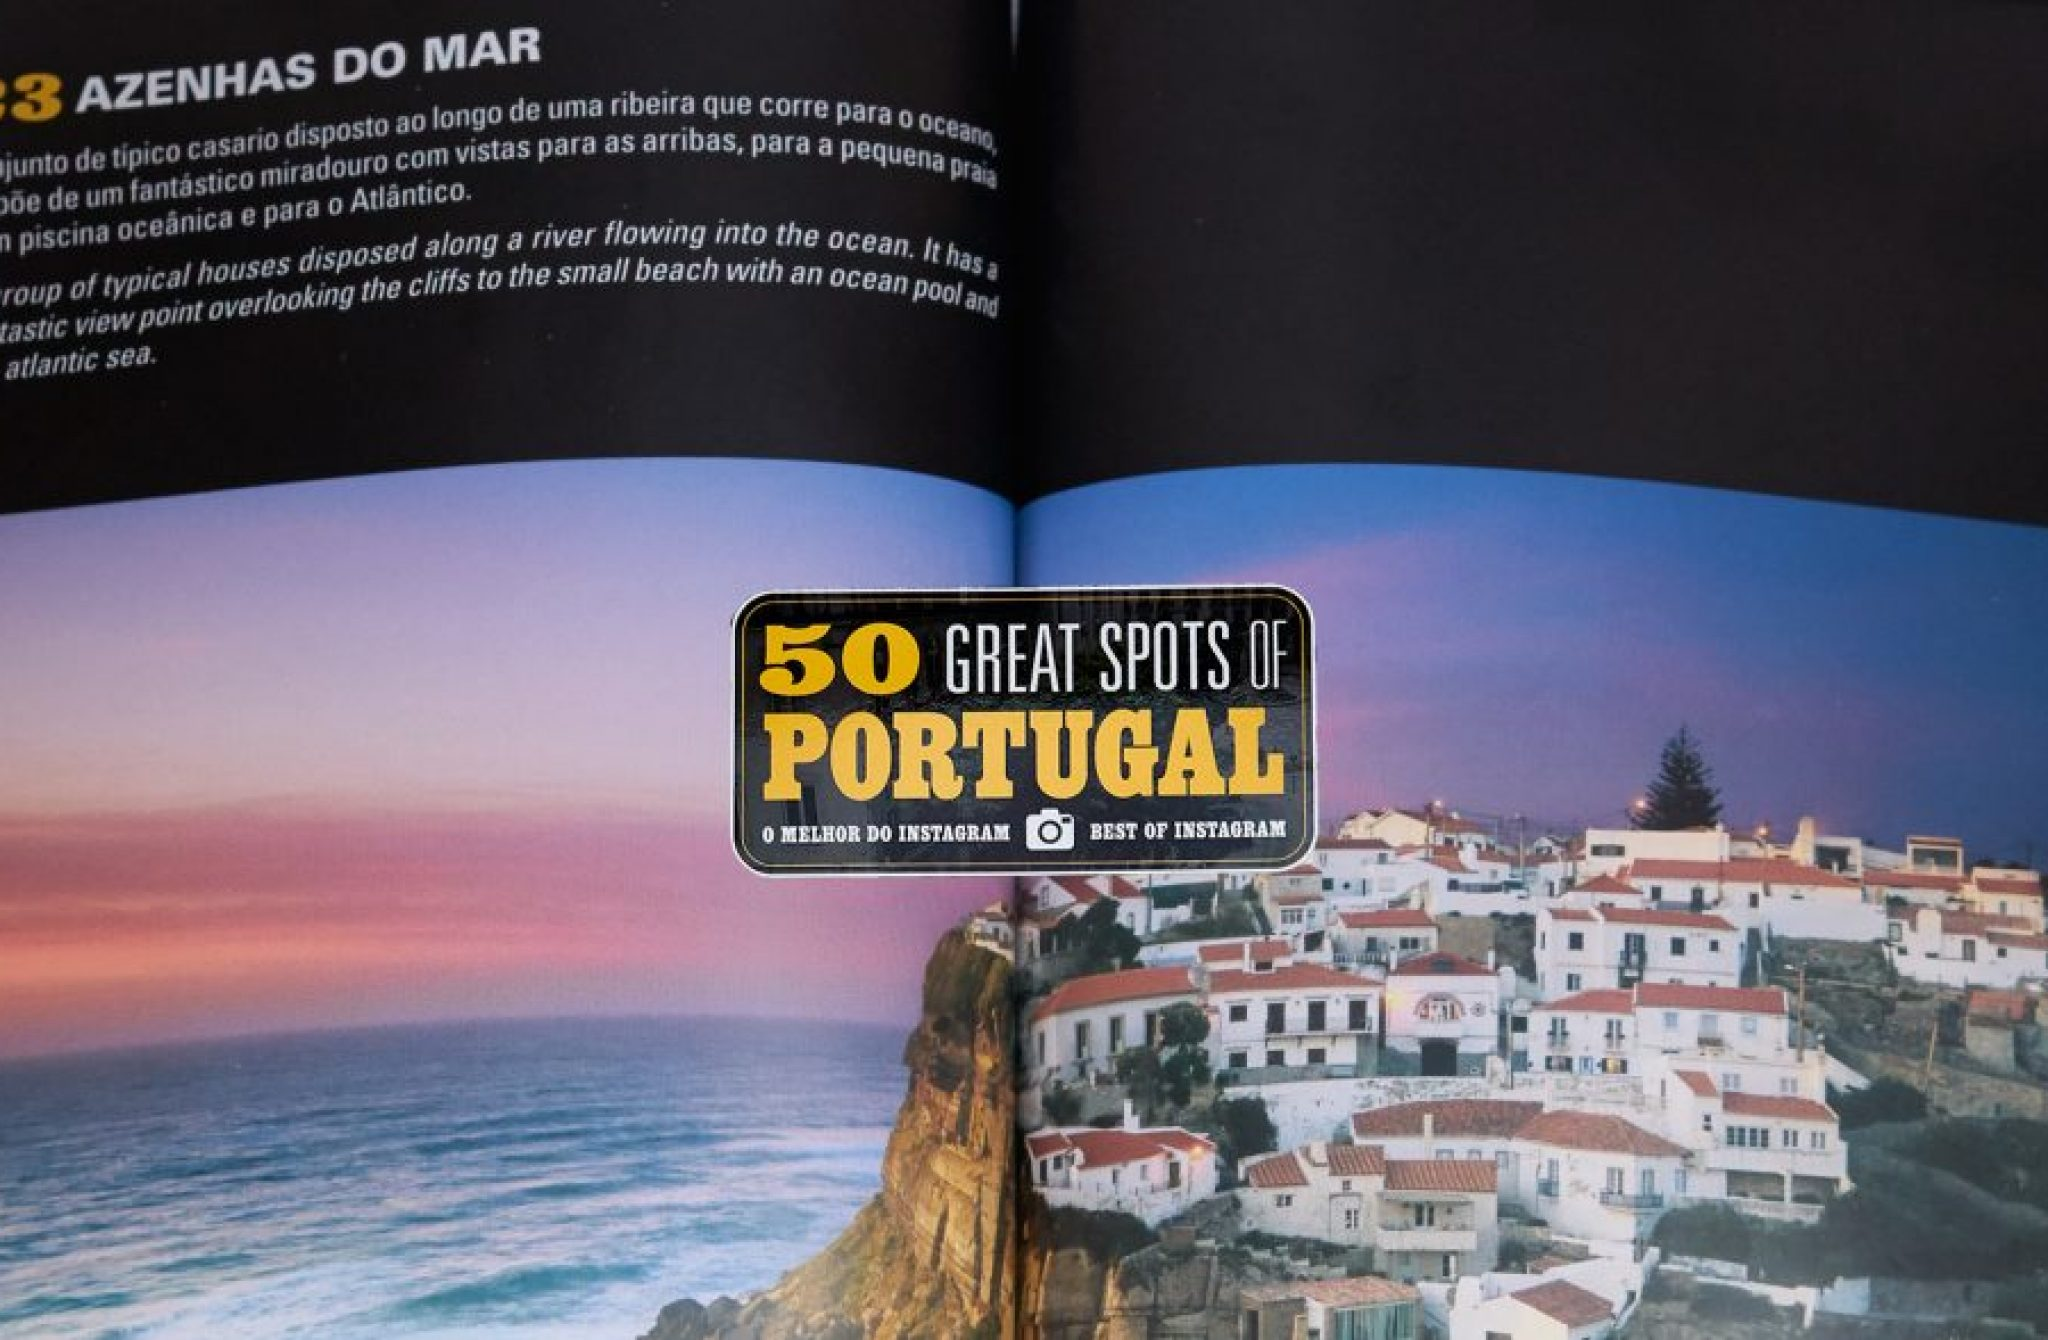 50 Great Spots of Portugal – Best Of Instagram